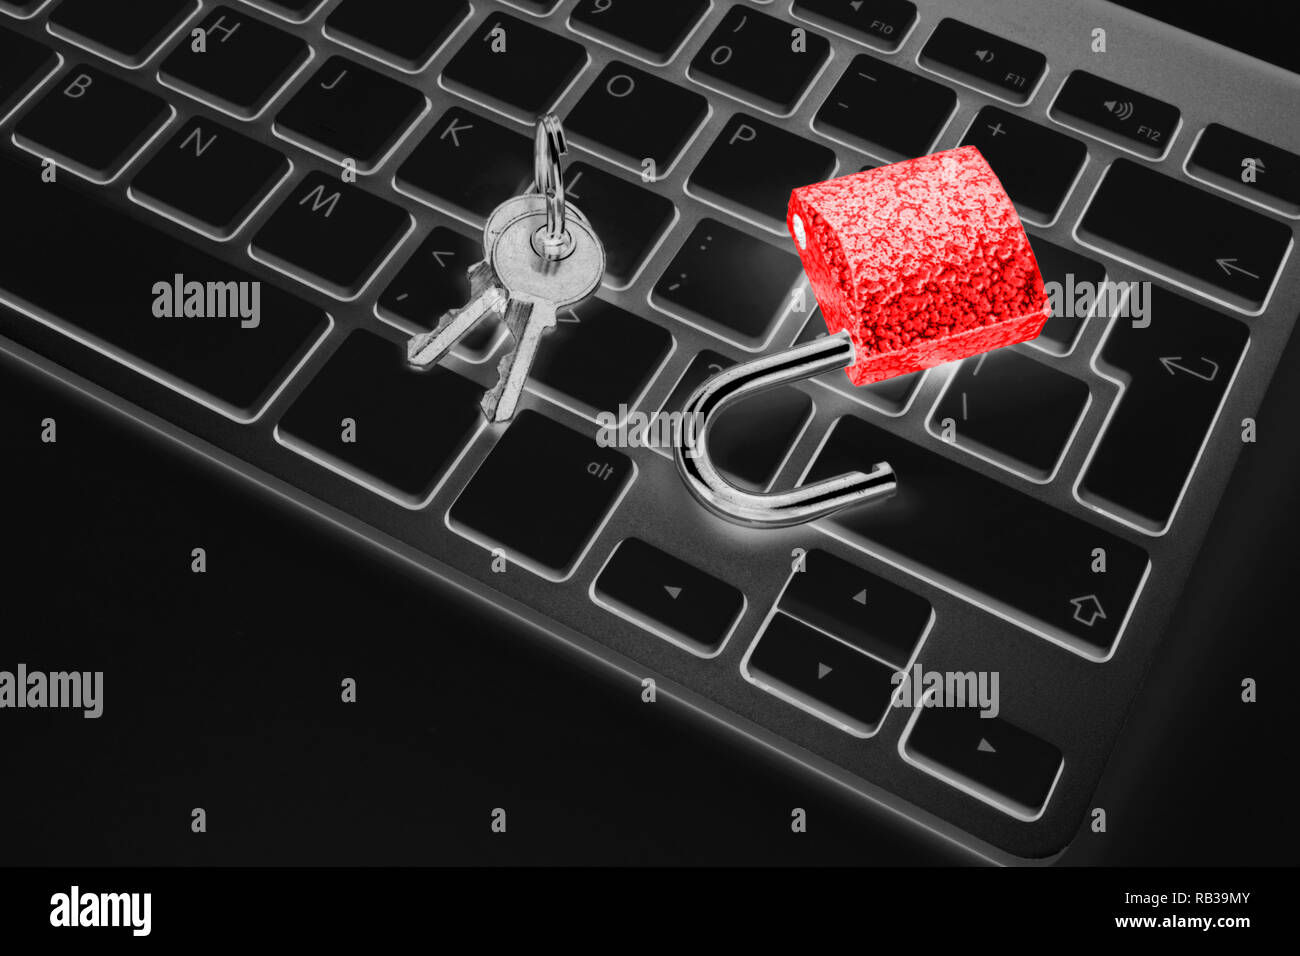 Locked computer safe from virus or malware attack. Laptop computer being protected from online cyber crime and hacking. Computer security concept with - Stock Image